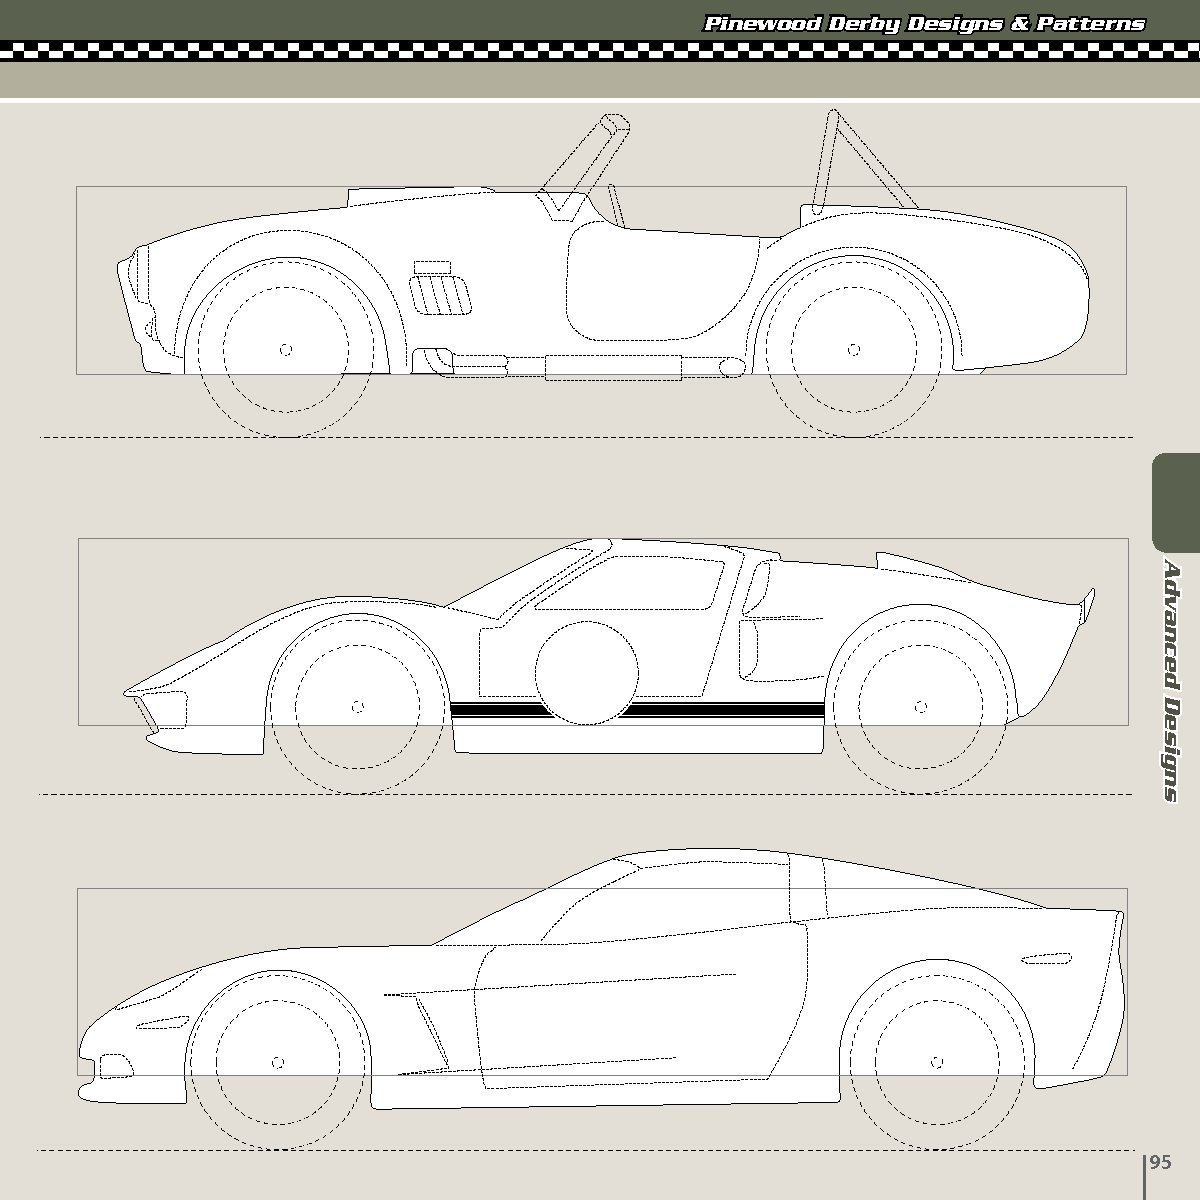 Pinewood Derby Designs Patterns The Ultimate Guide To Creating